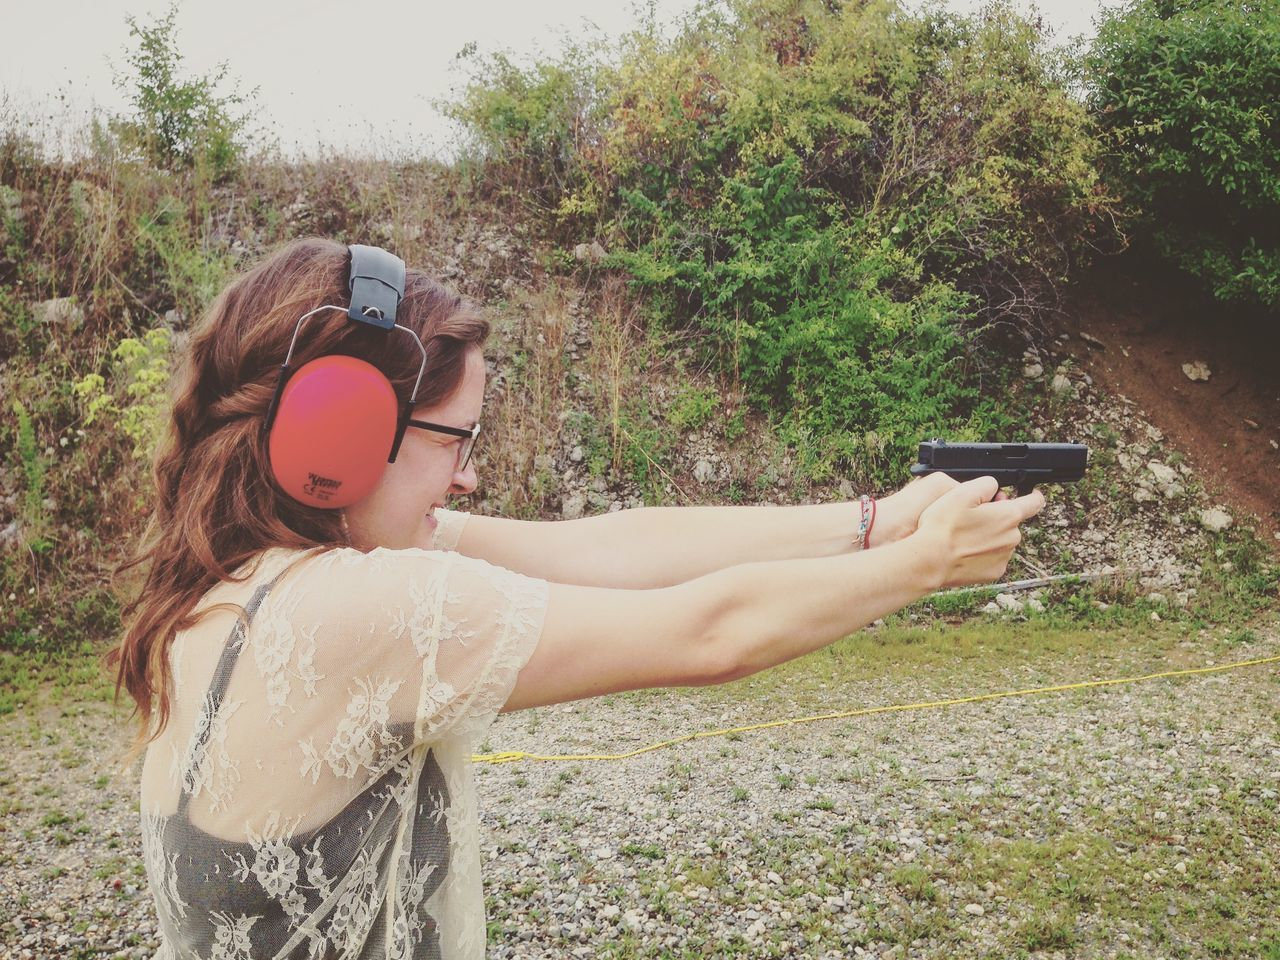 Gunsafe Gunsafety Indoors  Protection ReadyAim Stance Stans Woman